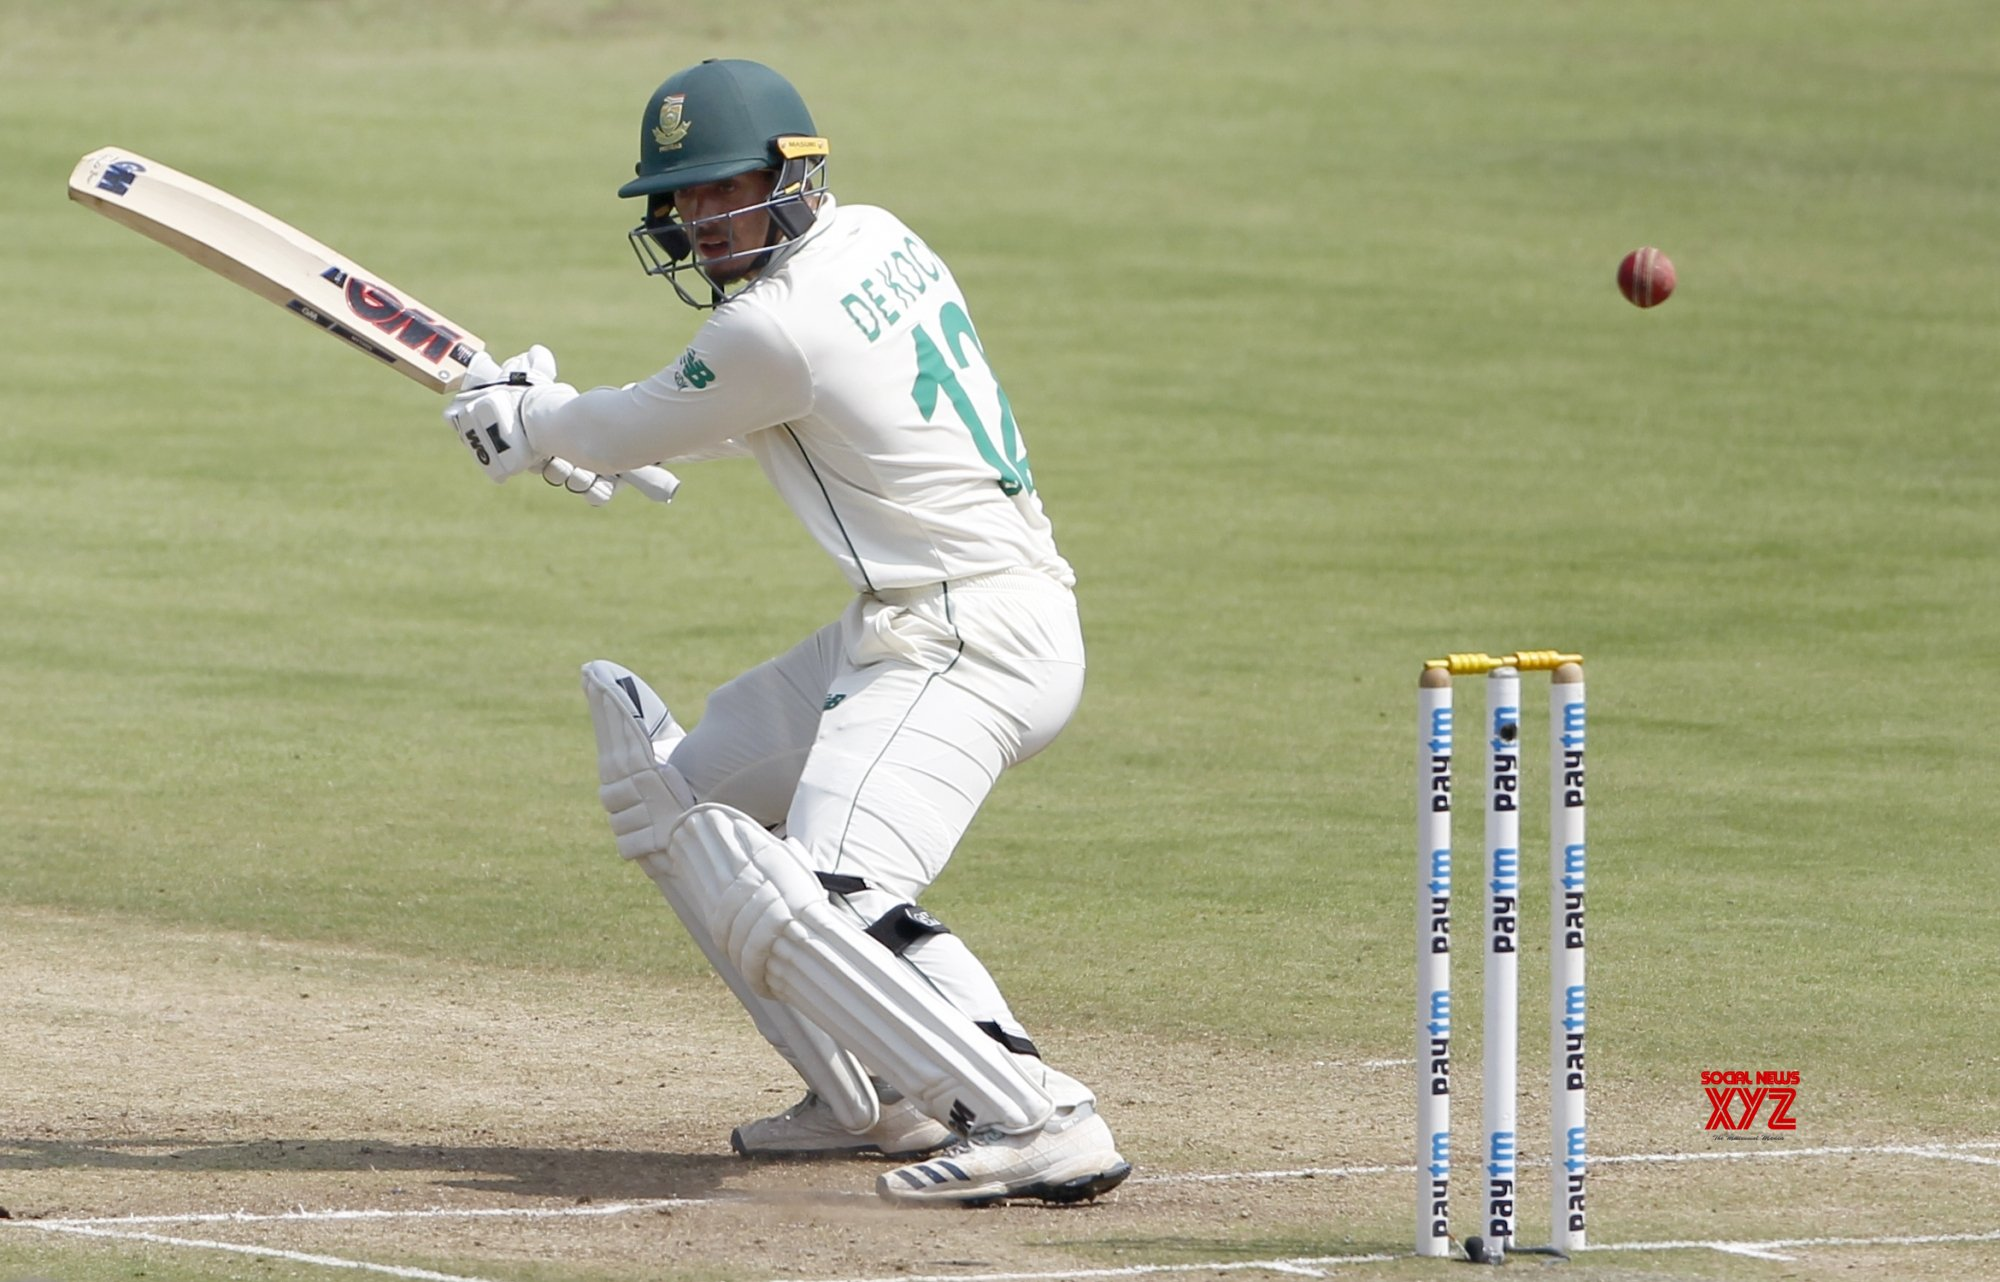 Pune: 2nd Test - India Vs South Africa - Day 3 (Batch - 6) #Gallery